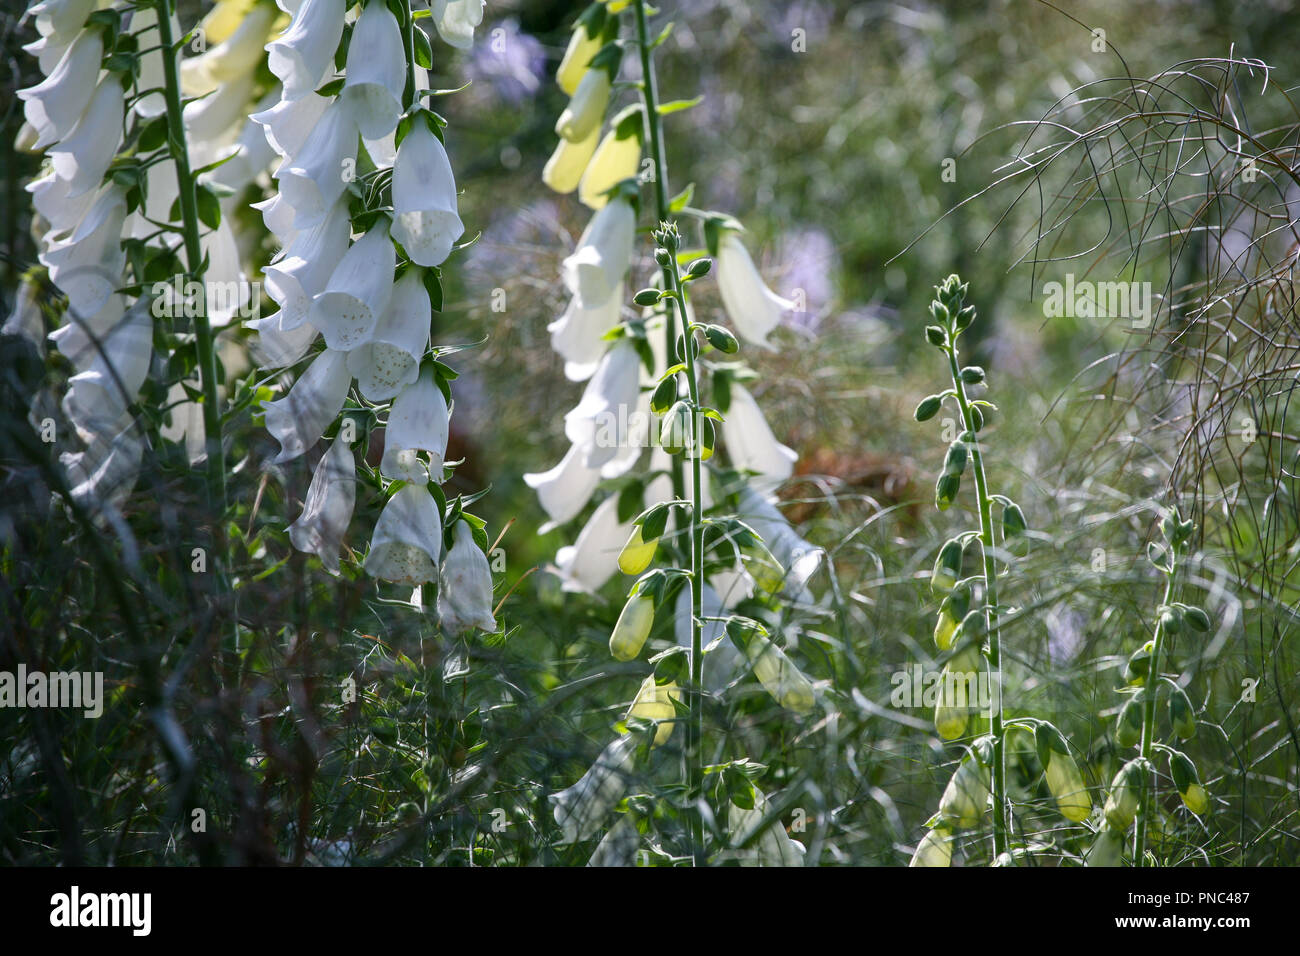 Digitalis purpurea 'Alba' - White foxgloves in an herbaceous planting scheme, summer - Stock Image